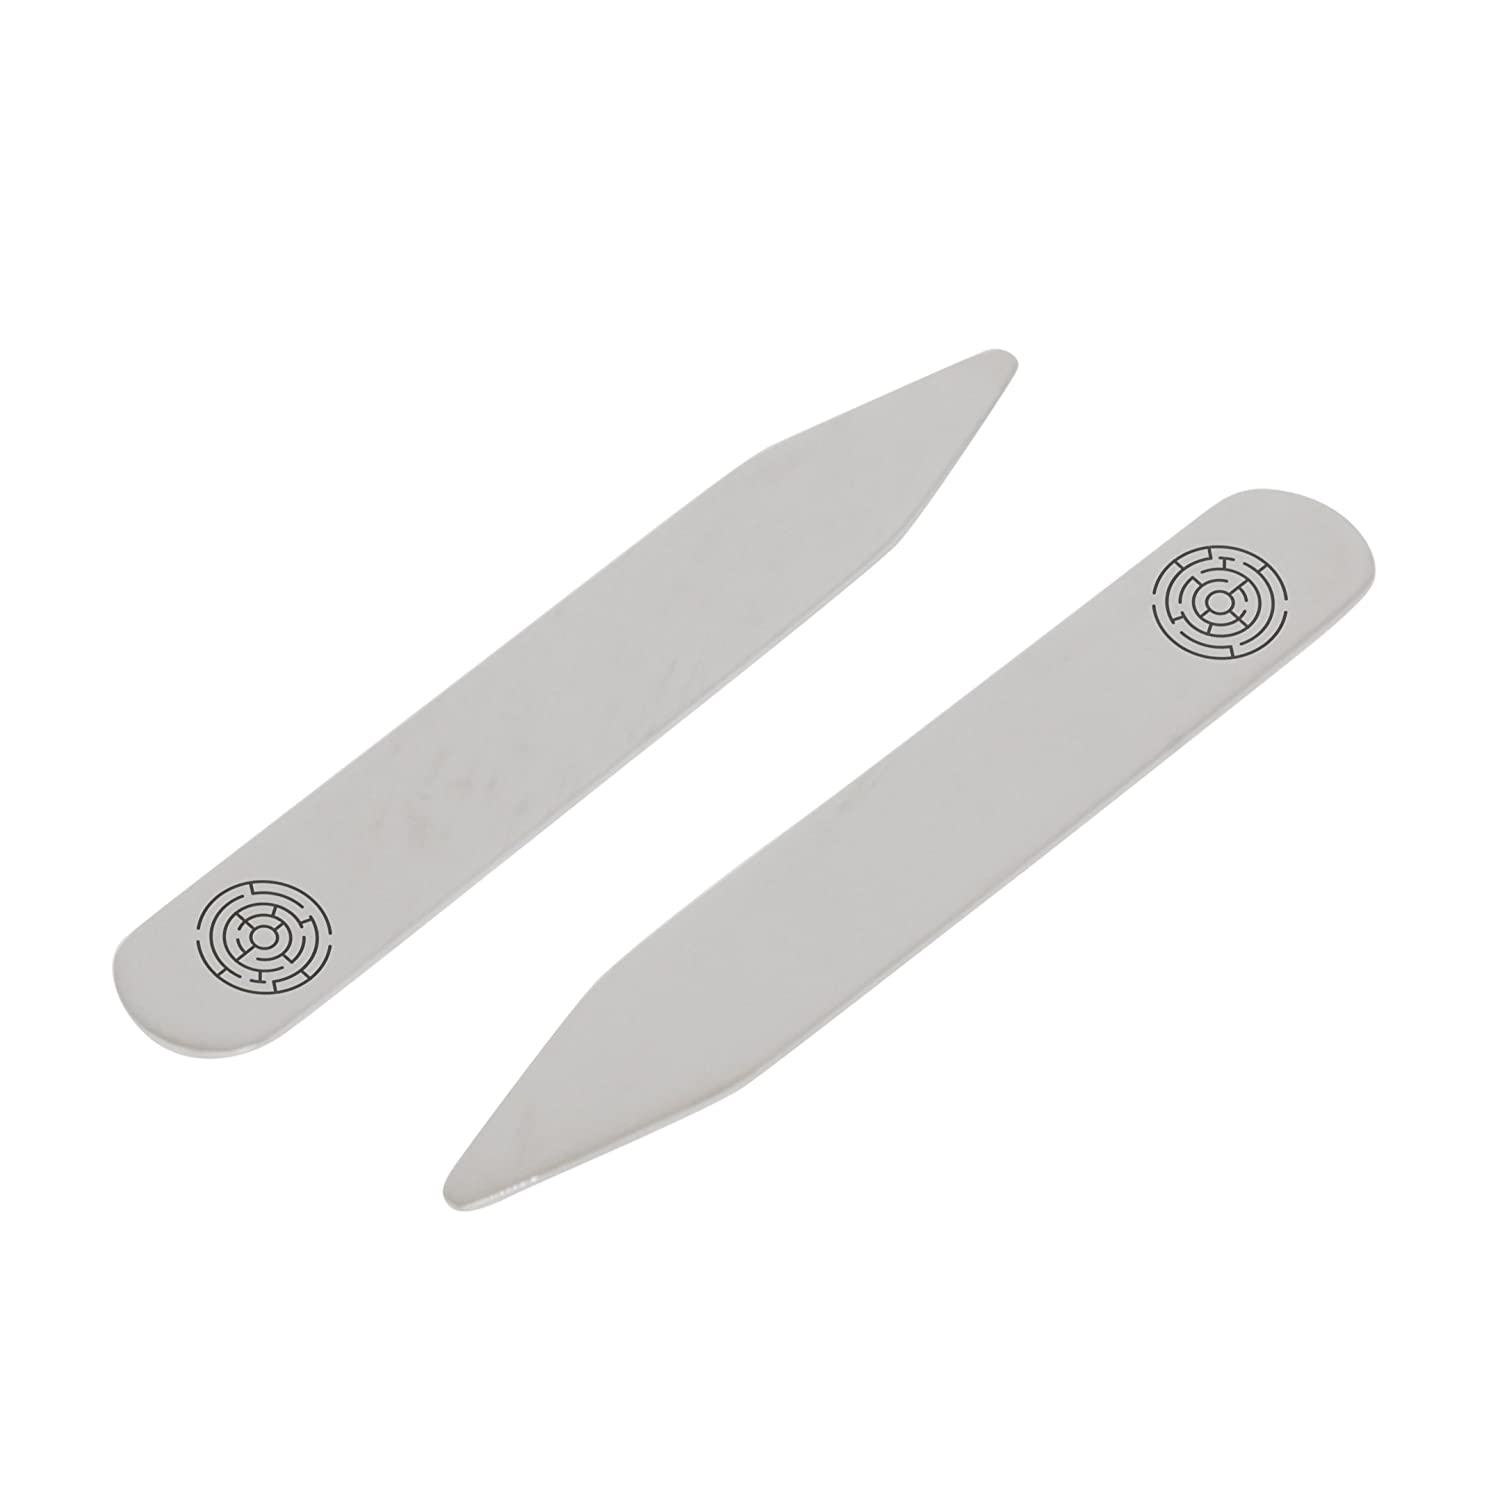 MODERN GOODS SHOP Stainless Steel Collar Stays With Laser Engraved Maze Of Life Design Made In USA 2.5 Inch Metal Collar Stiffeners